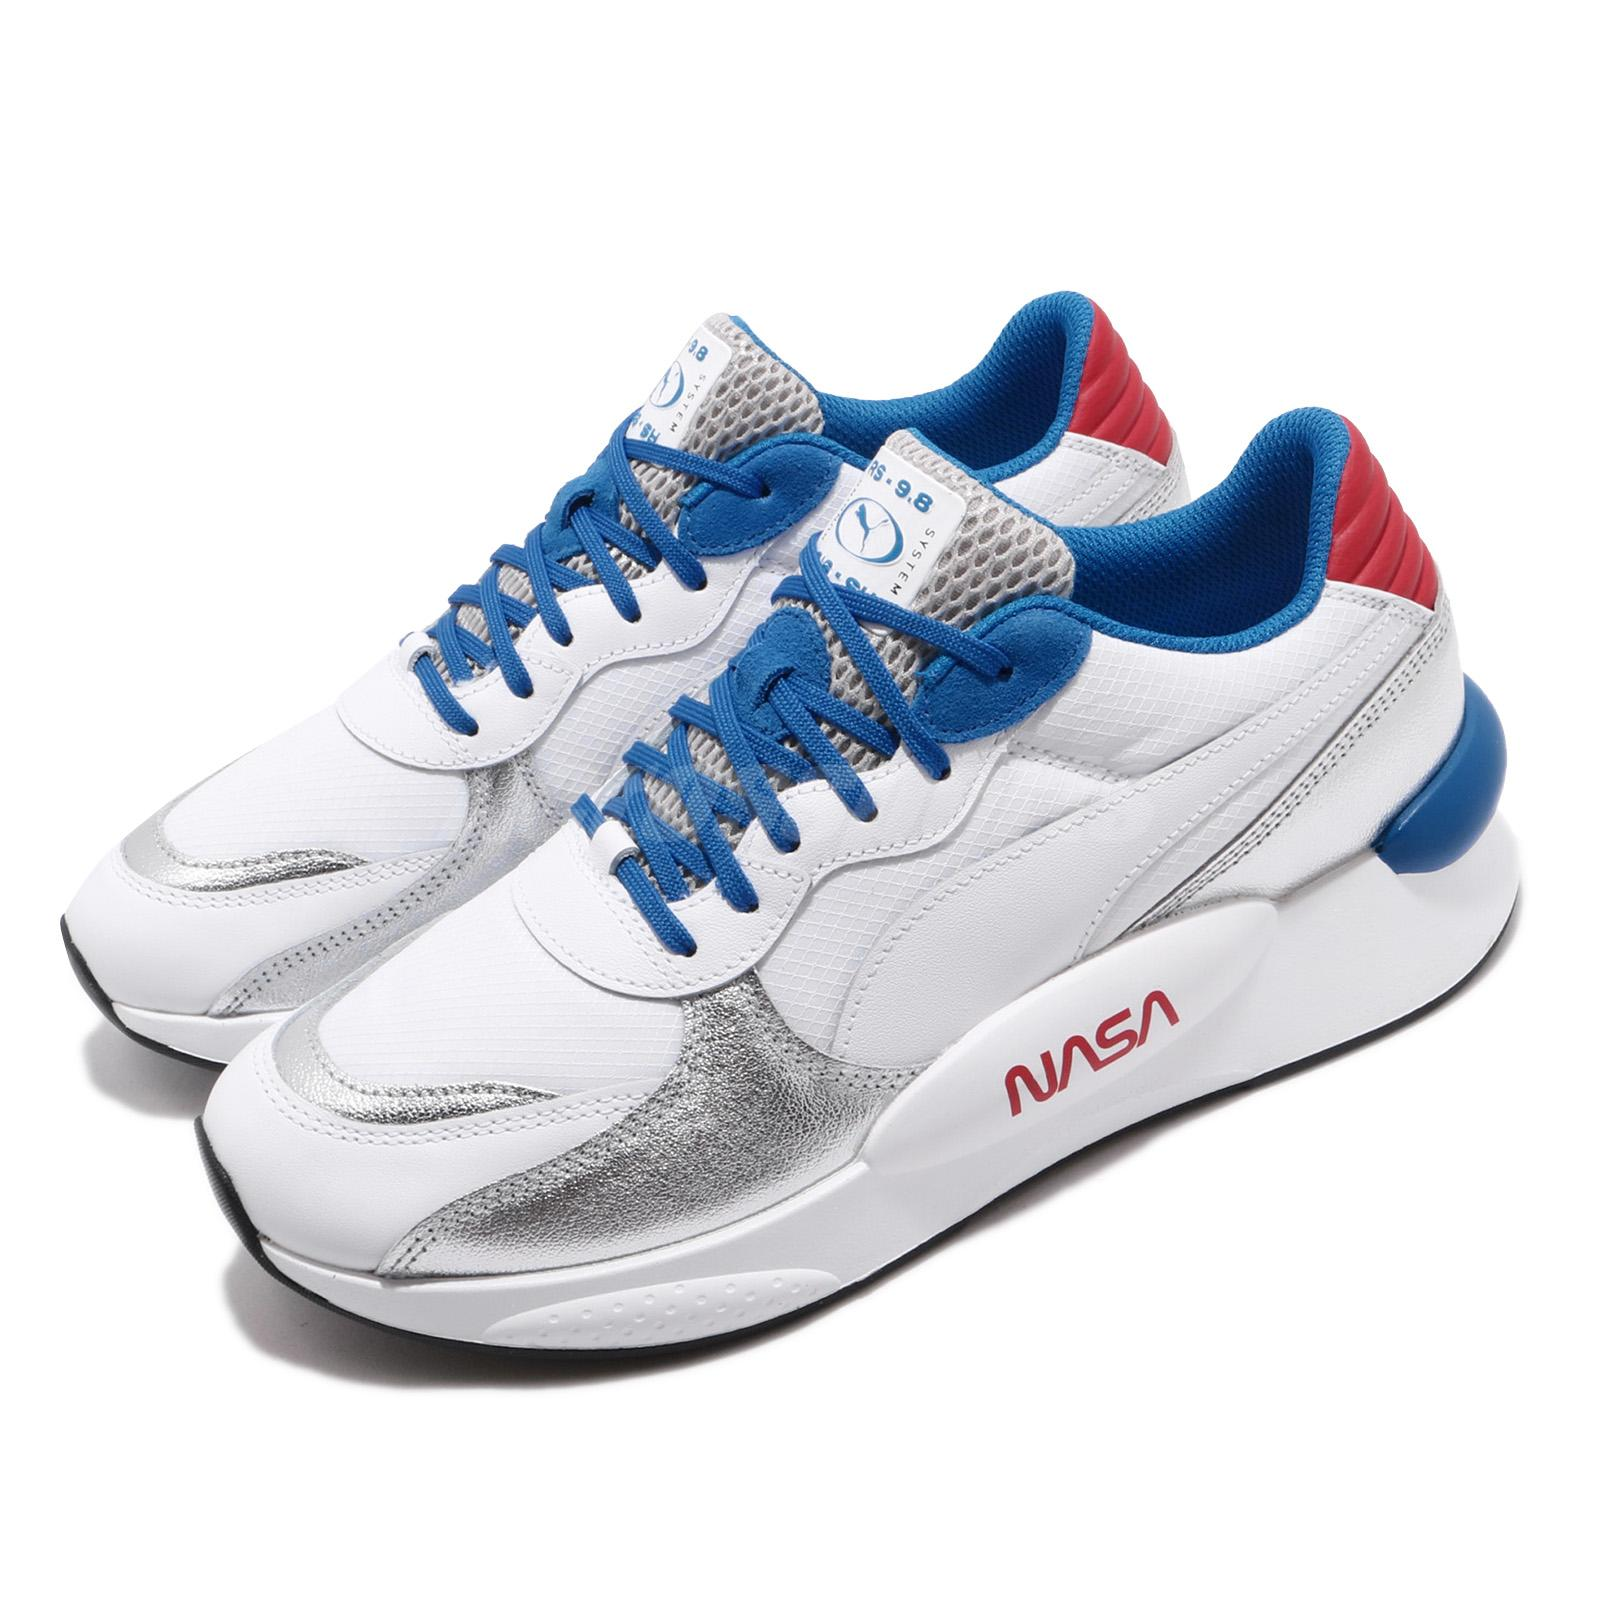 Details about Puma RS 9.8 X Space Agency NASA White Silver Red Blue Men  Running Shoe 372509-01